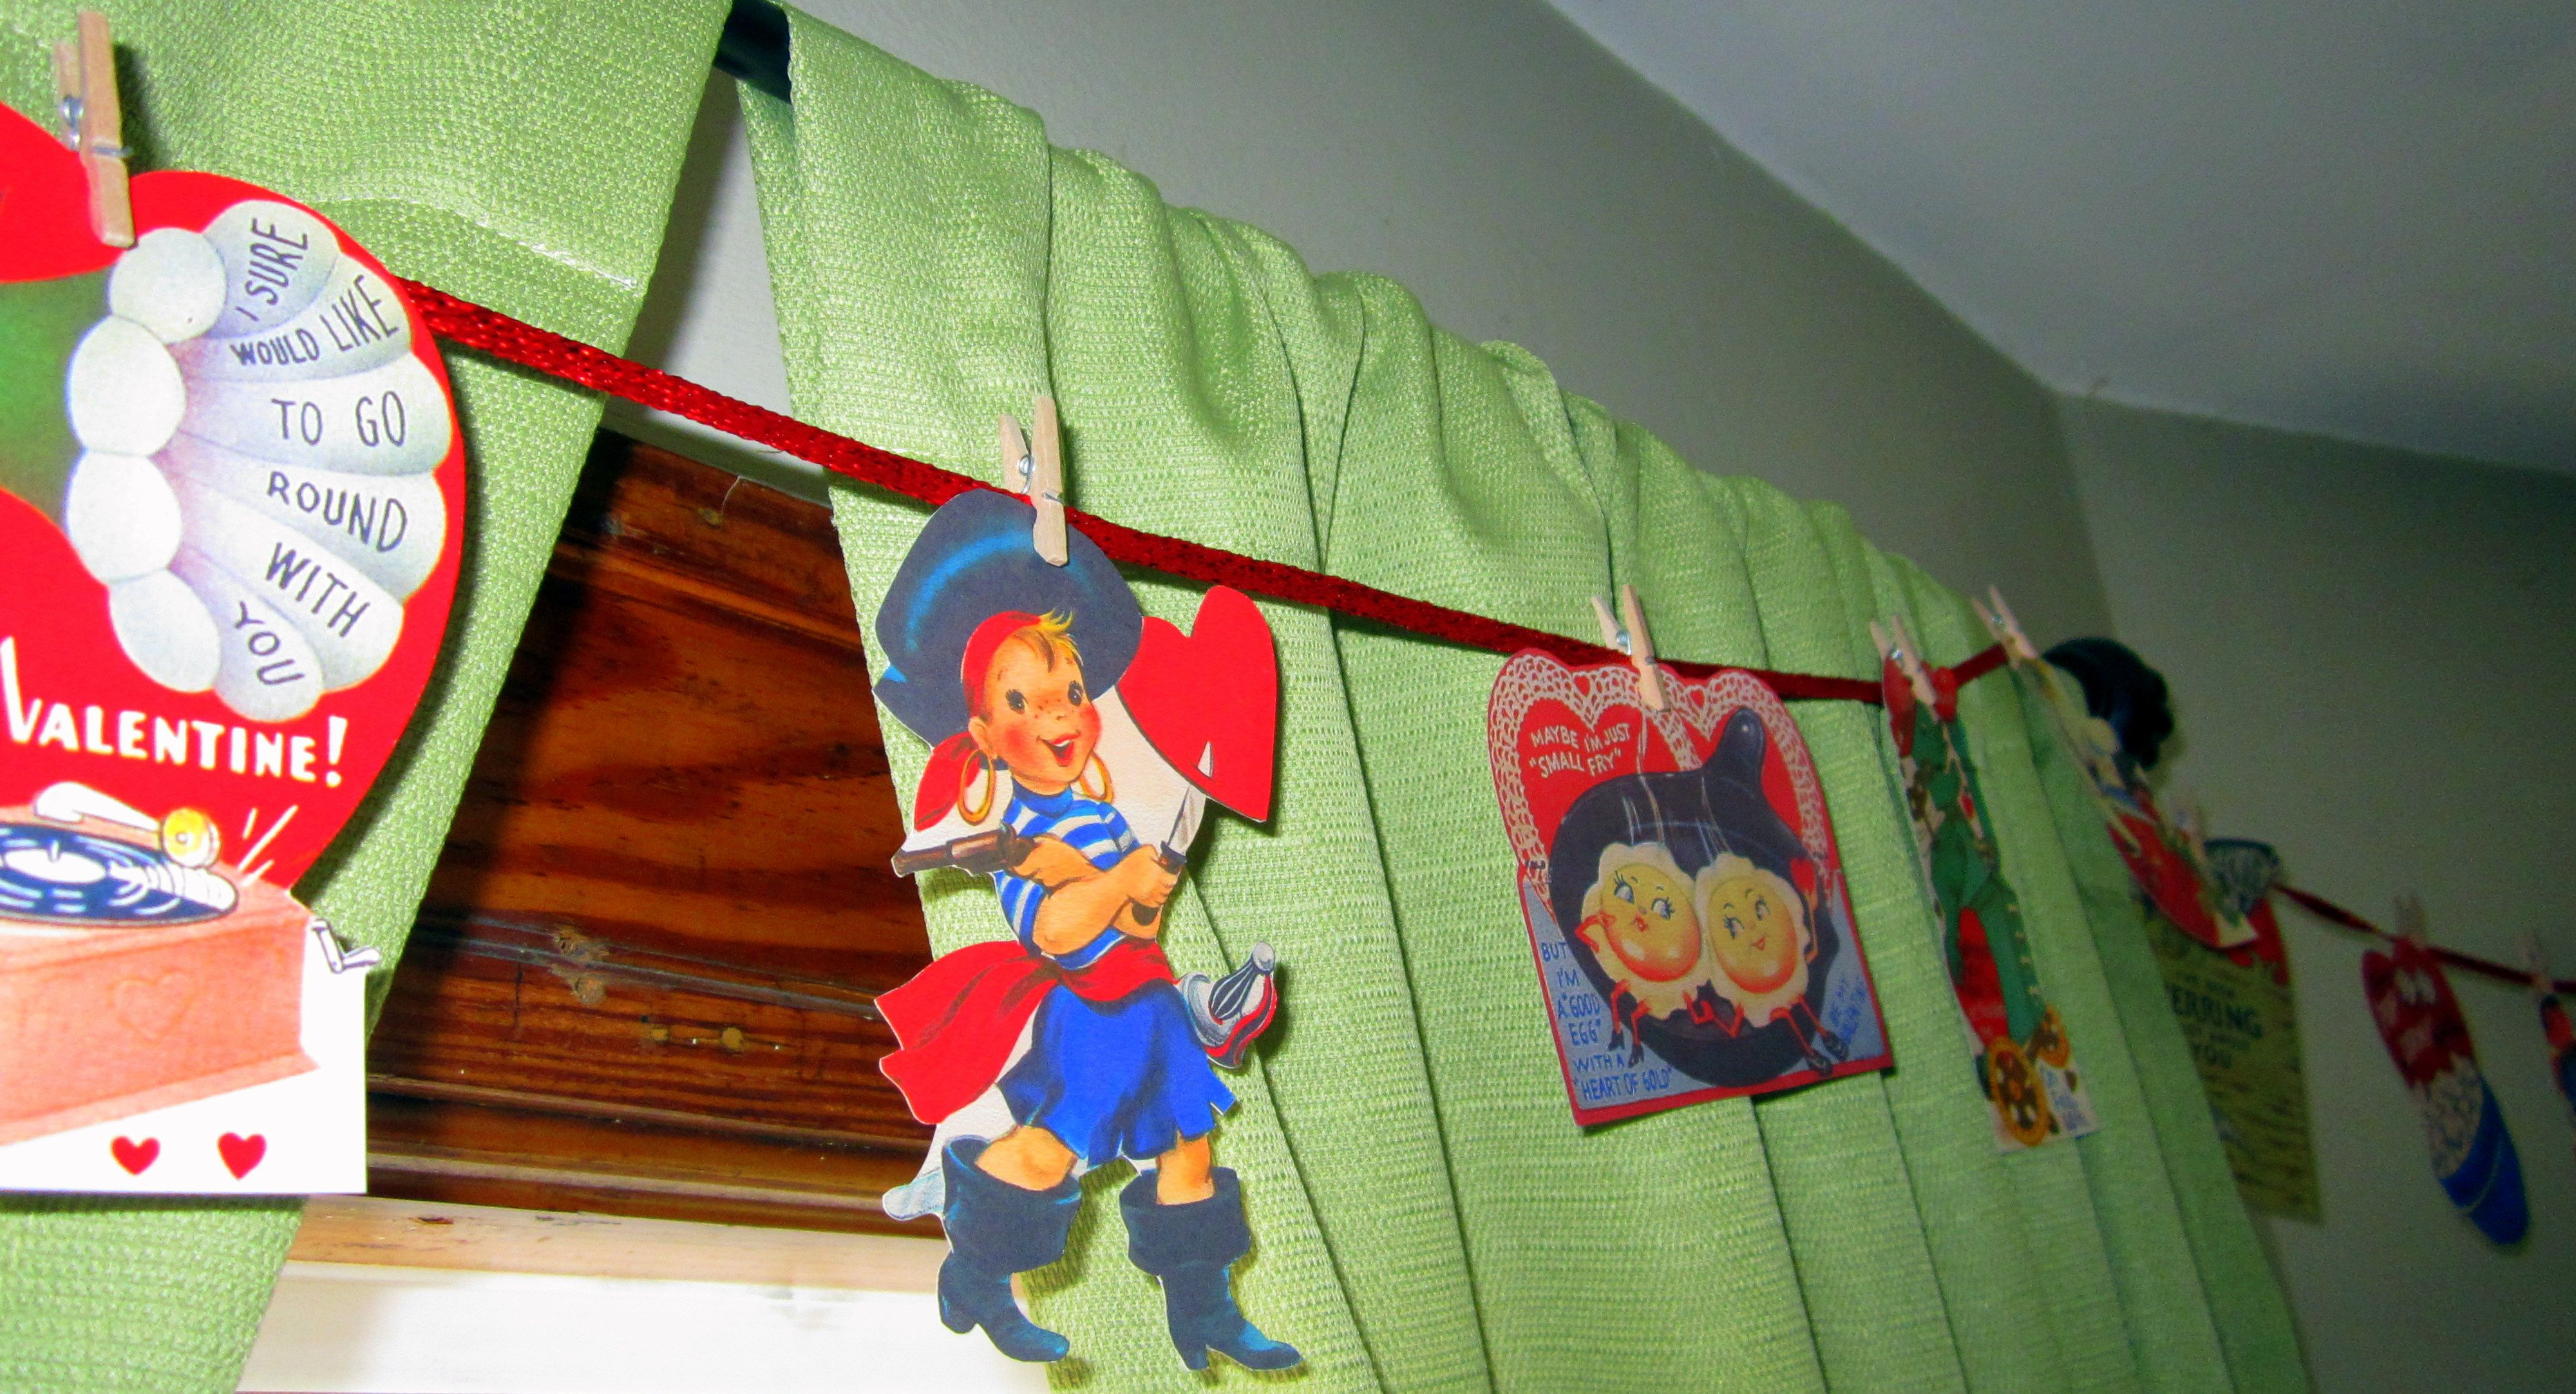 Vintage Valentine's Banner.  PRINTED from Flickr, CUT around edges, HUNG on ribbon with mini clothespins.